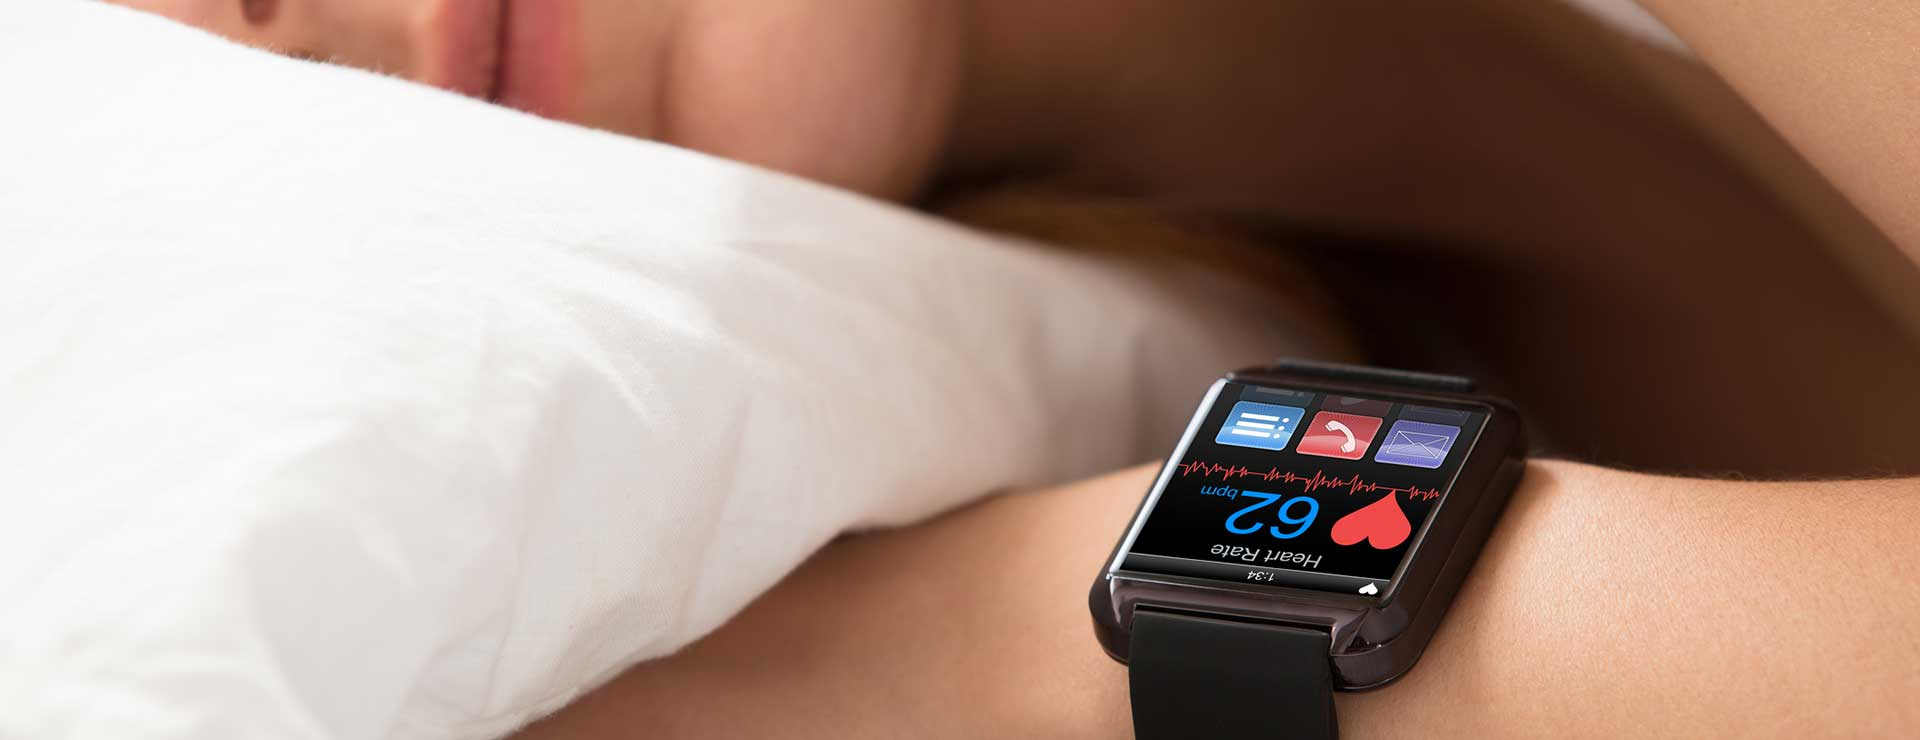 A person sleeping with a smart watch